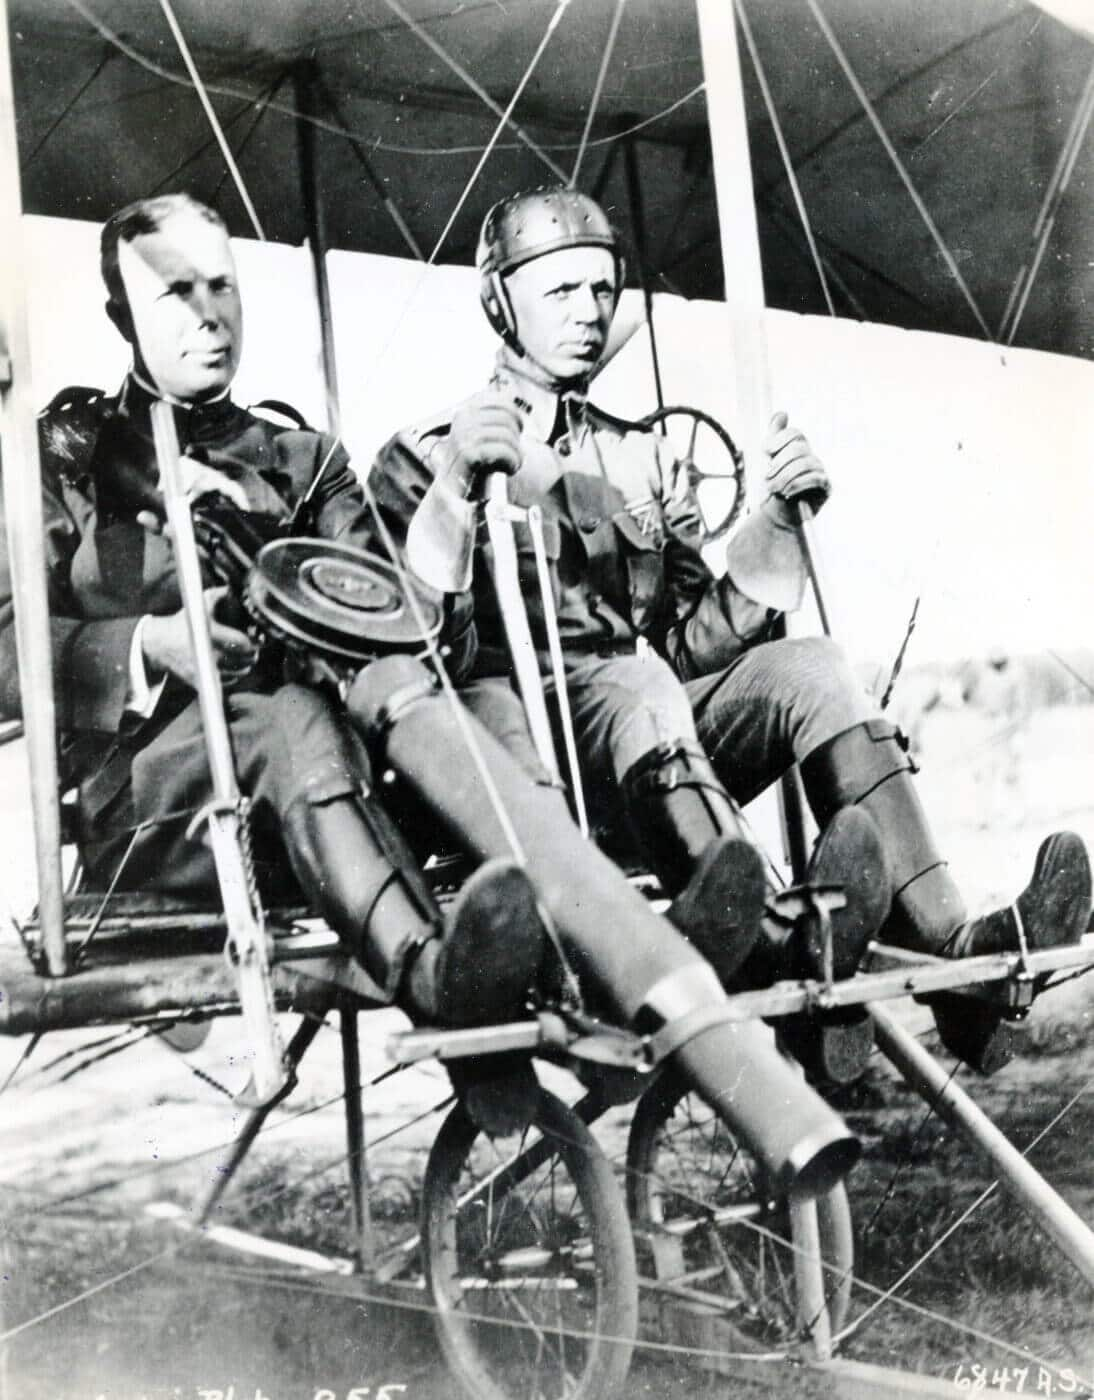 Lewis gun strapped onto a Wright Model B Flyer with two men in plane